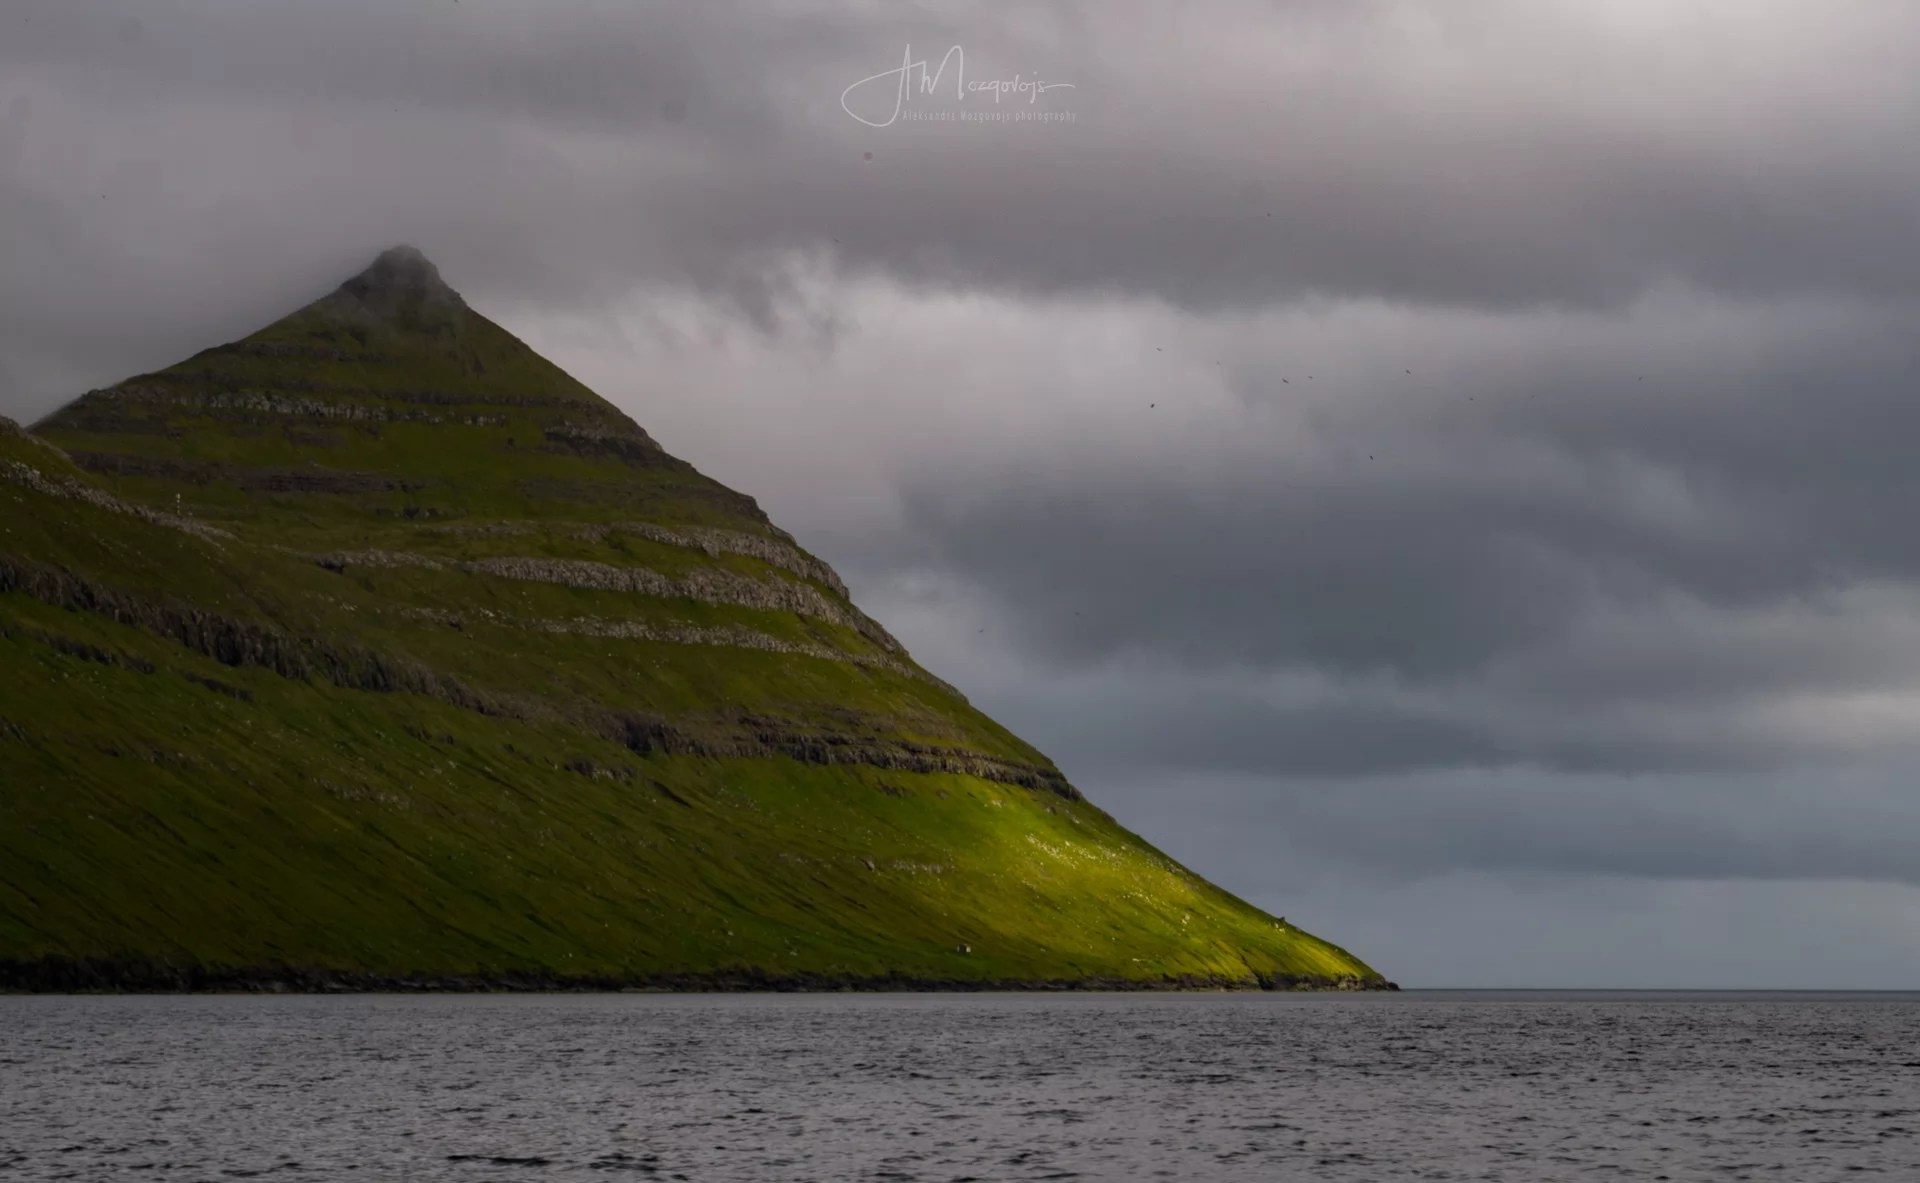 Just one of the views from aboard the ferry from Klaksvik to Kalsoy